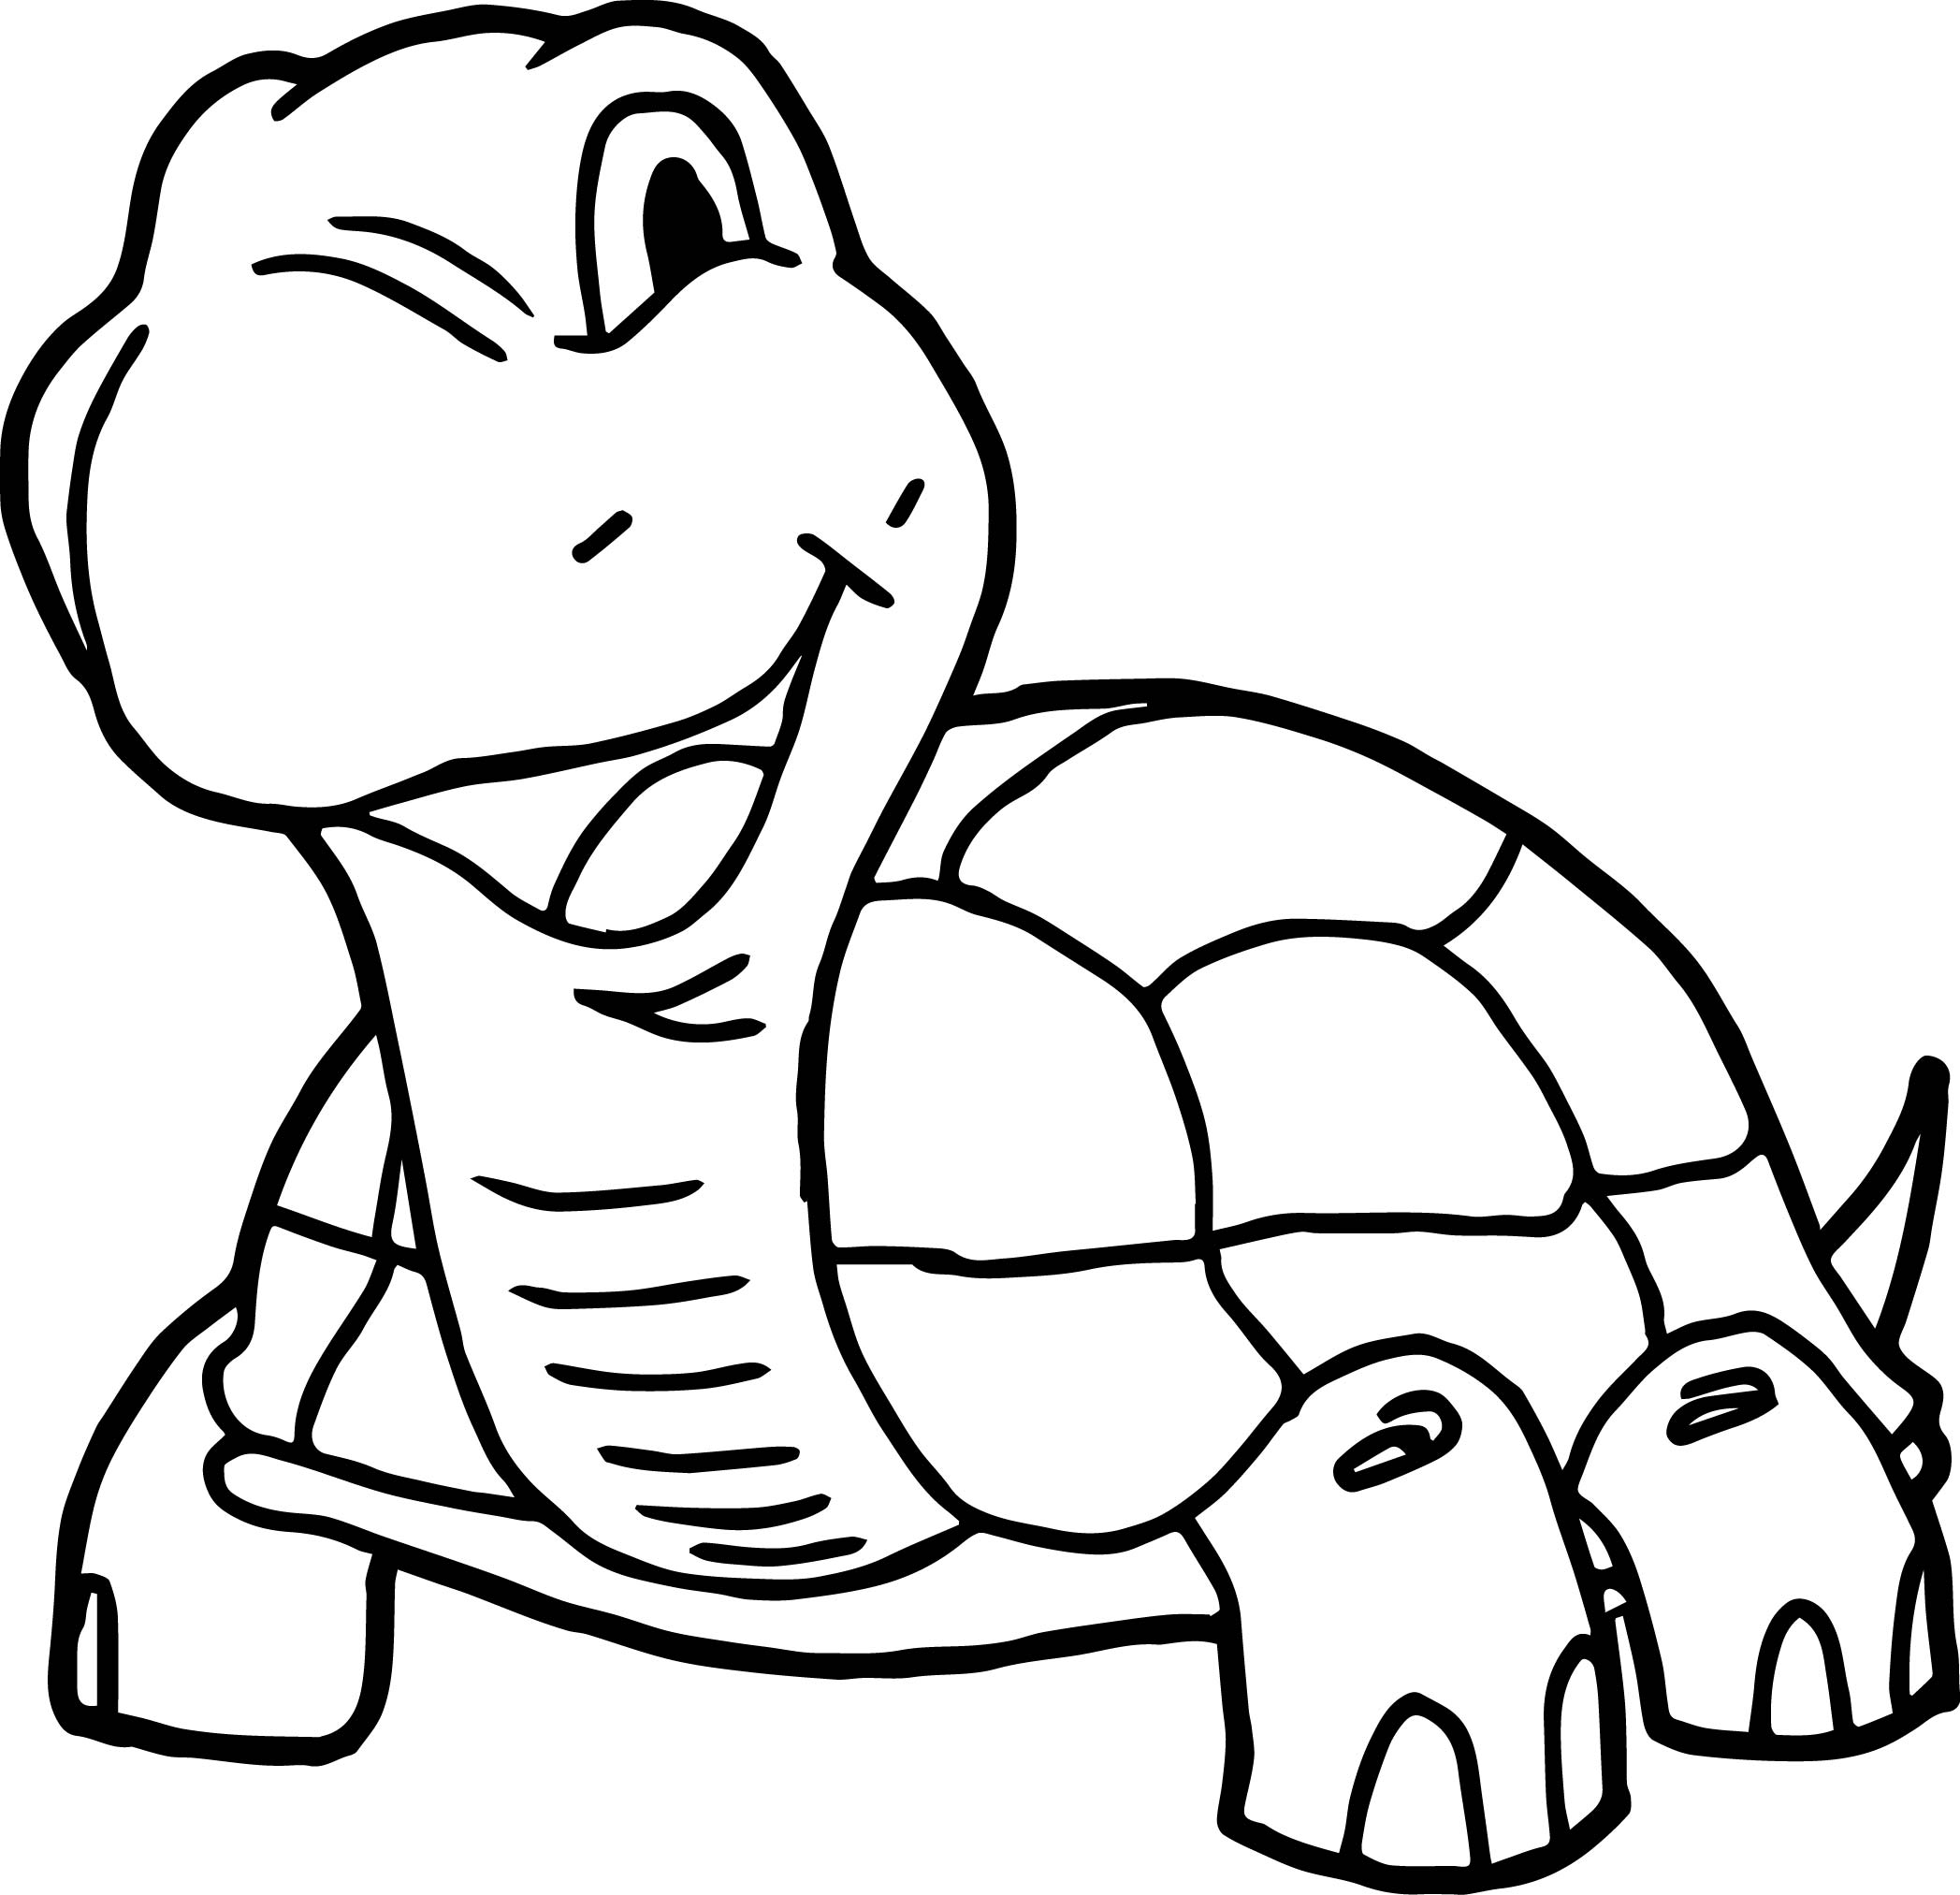 2095x2025 Smile Tortoise Turtle Coloring Page Wecoloringpage